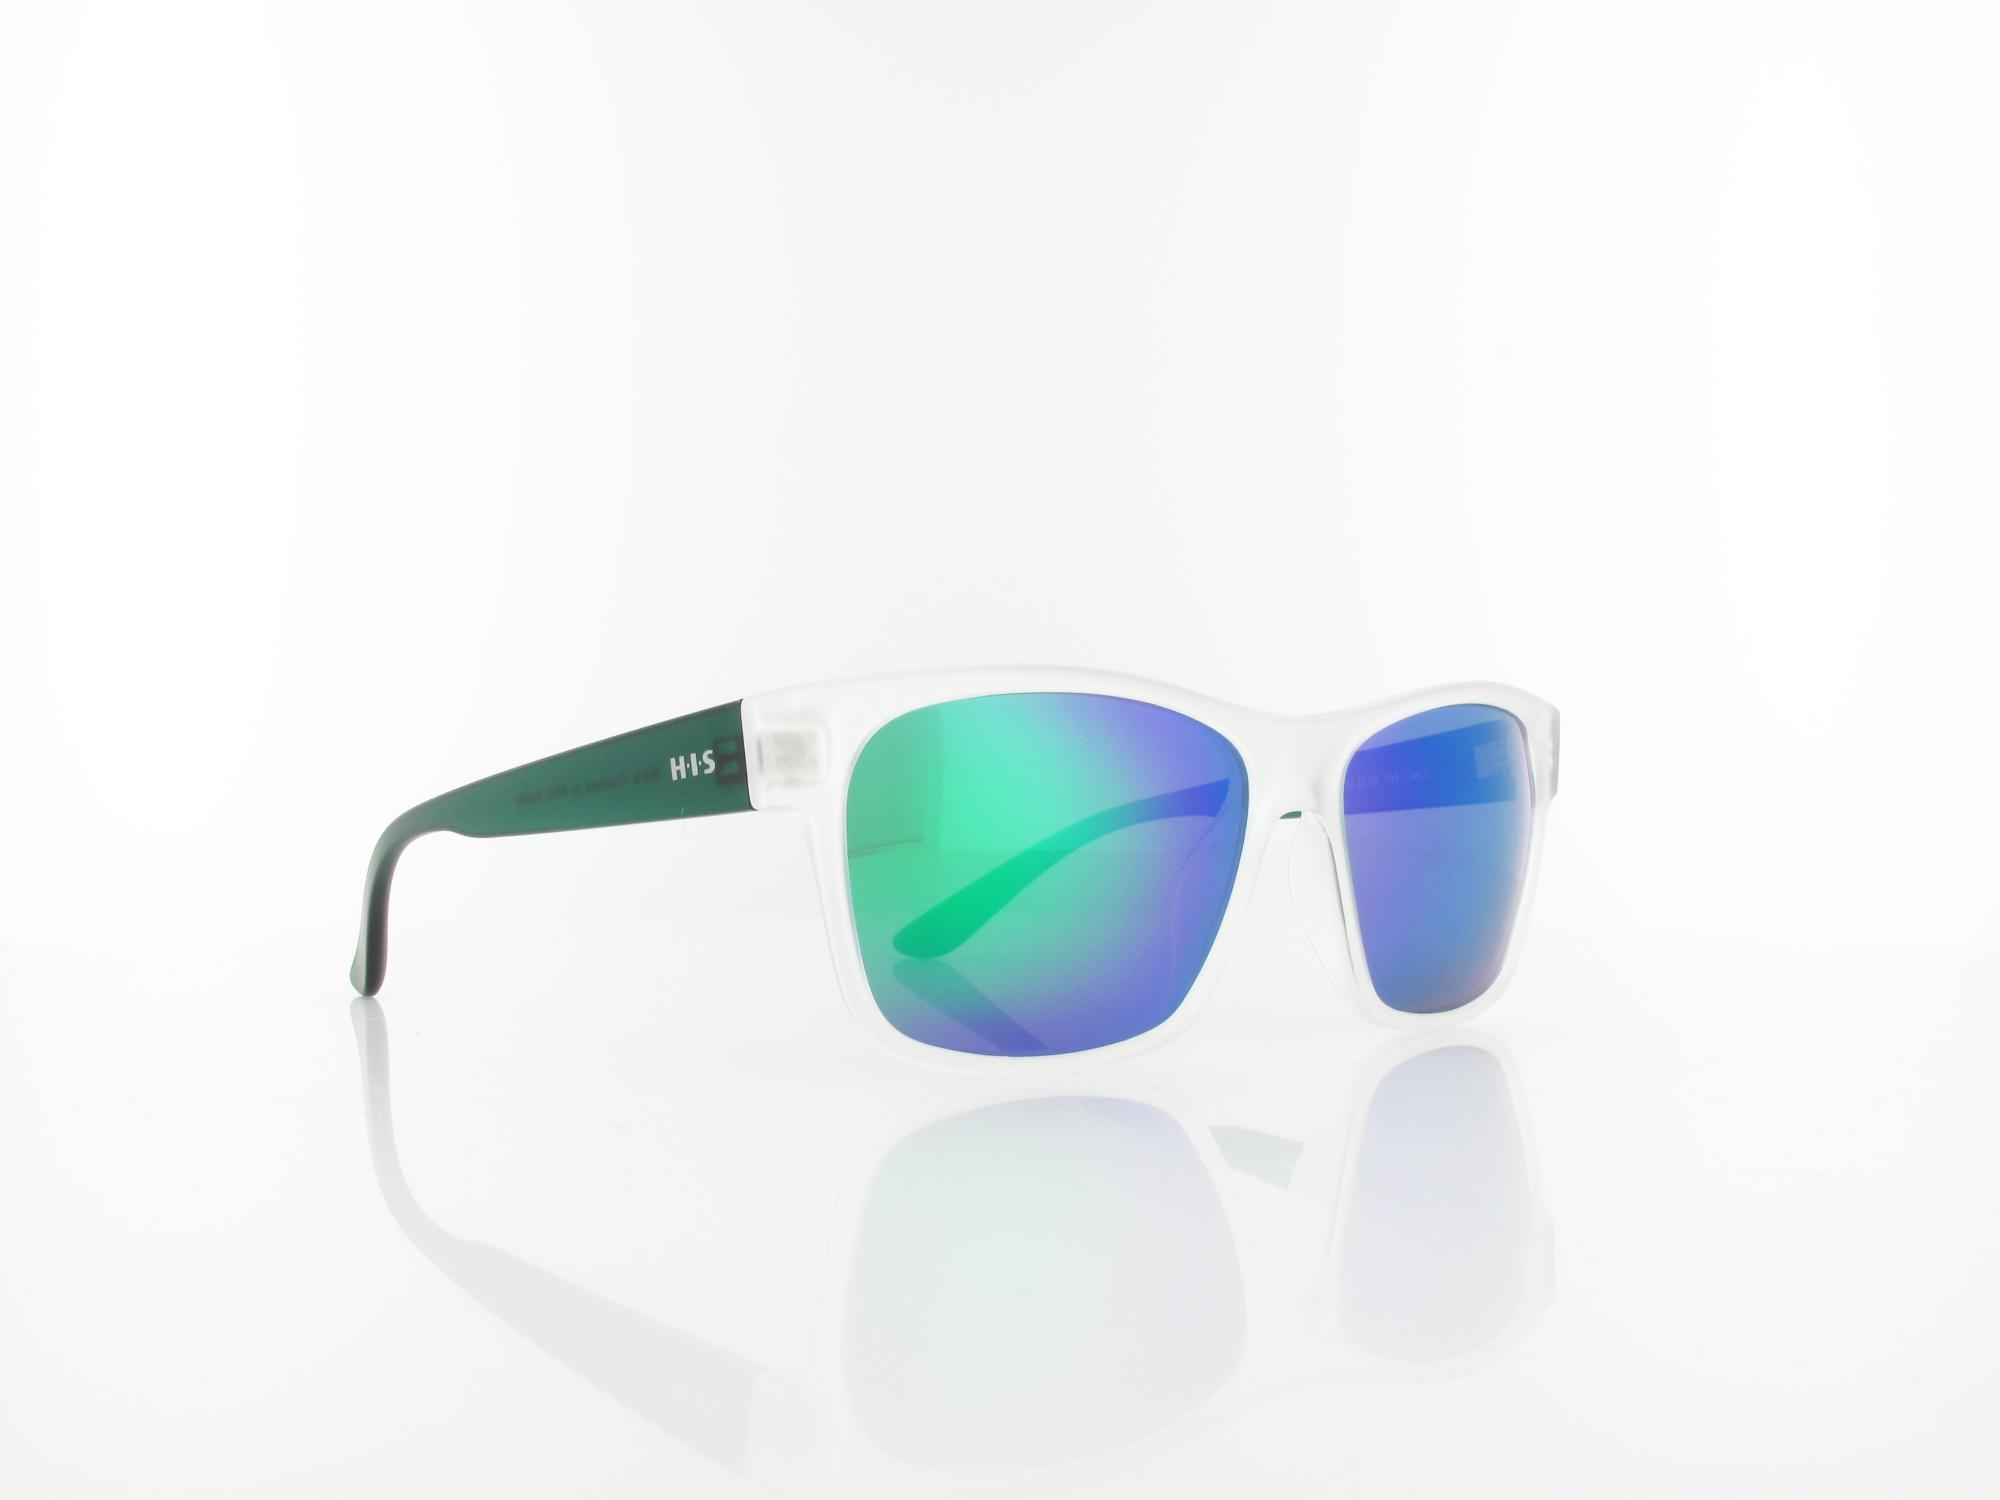 HIS polarized | HP58123-3 57 | matt crystal green / grey and icy green revo polarized